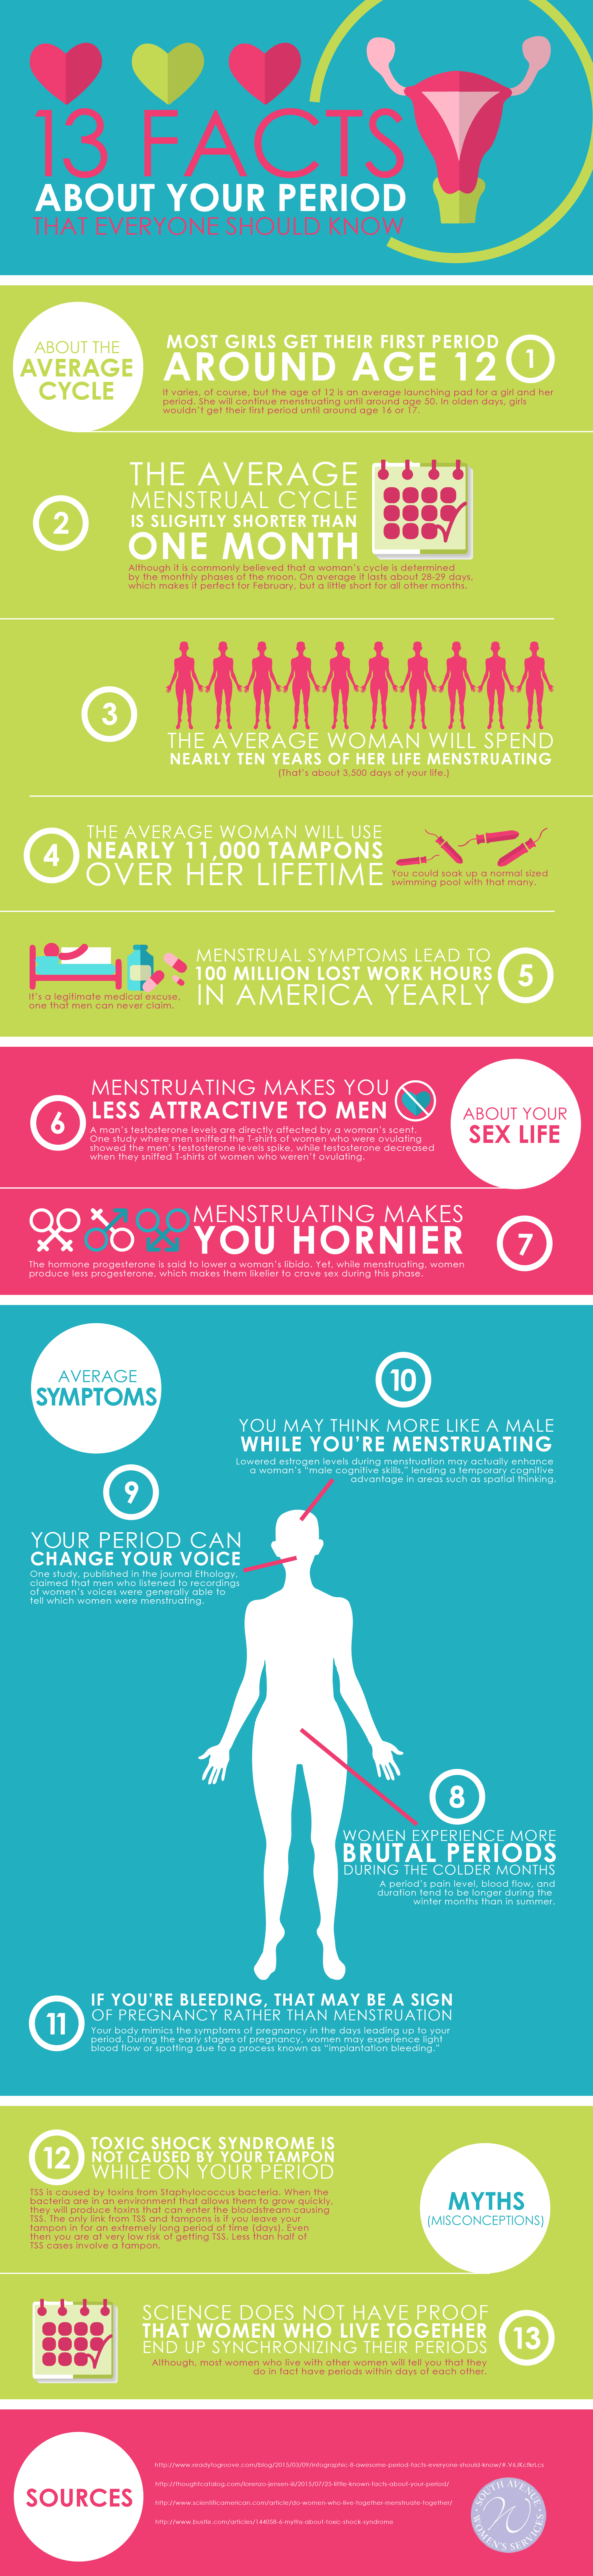 period facts infographic